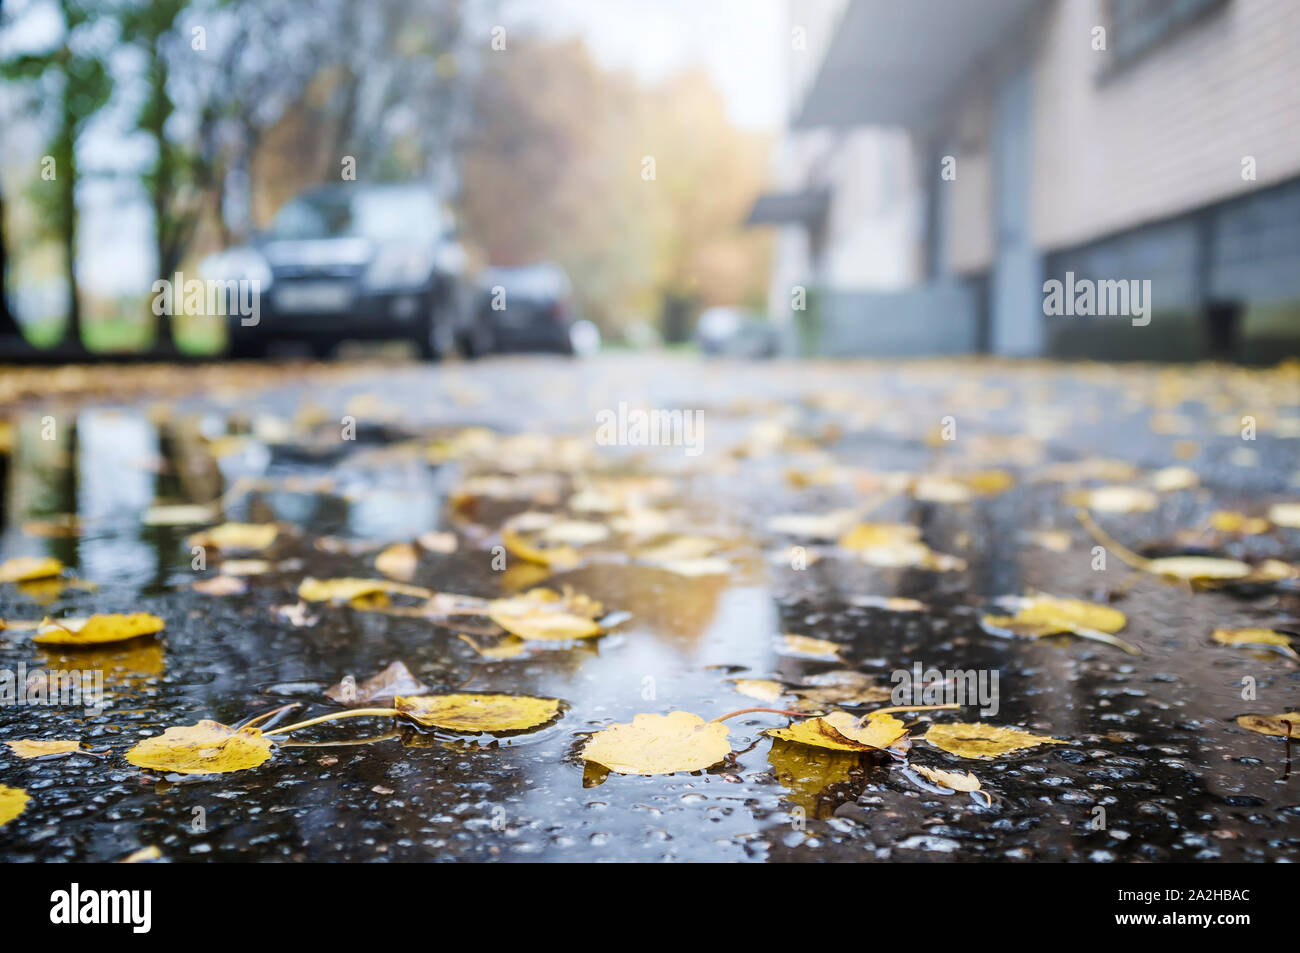 Beautiful fallen, yellow leaves lie on wet asphalt, on a blurry background cars, trees, building. Stock Photo